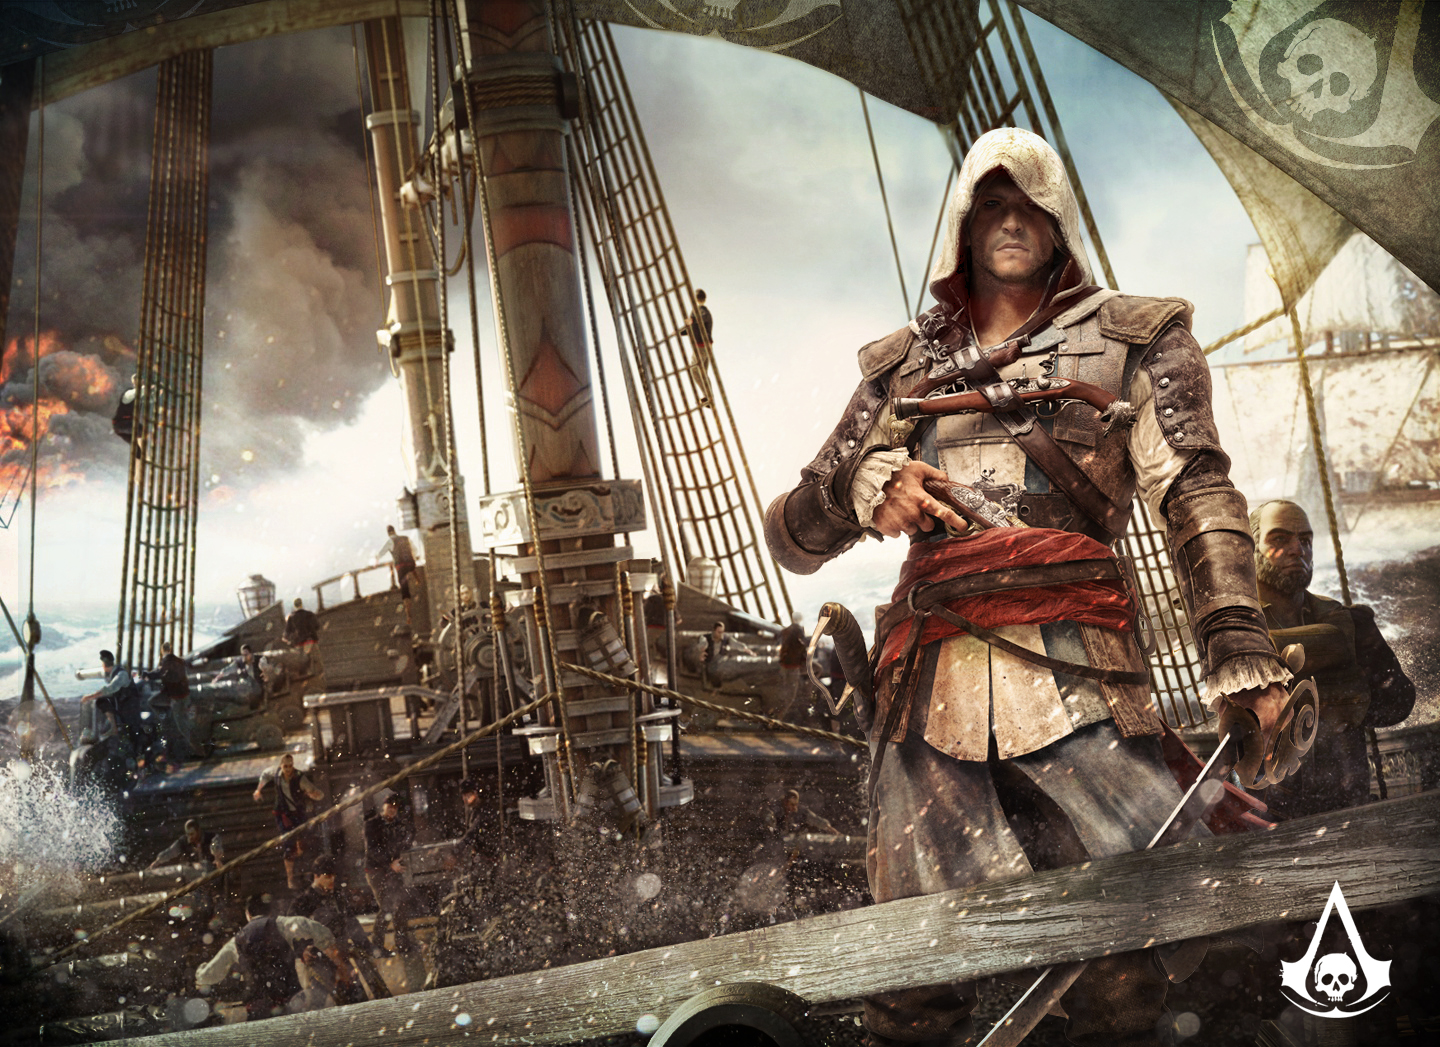 Gameplay e edição especial de Assassin's Creed IV!